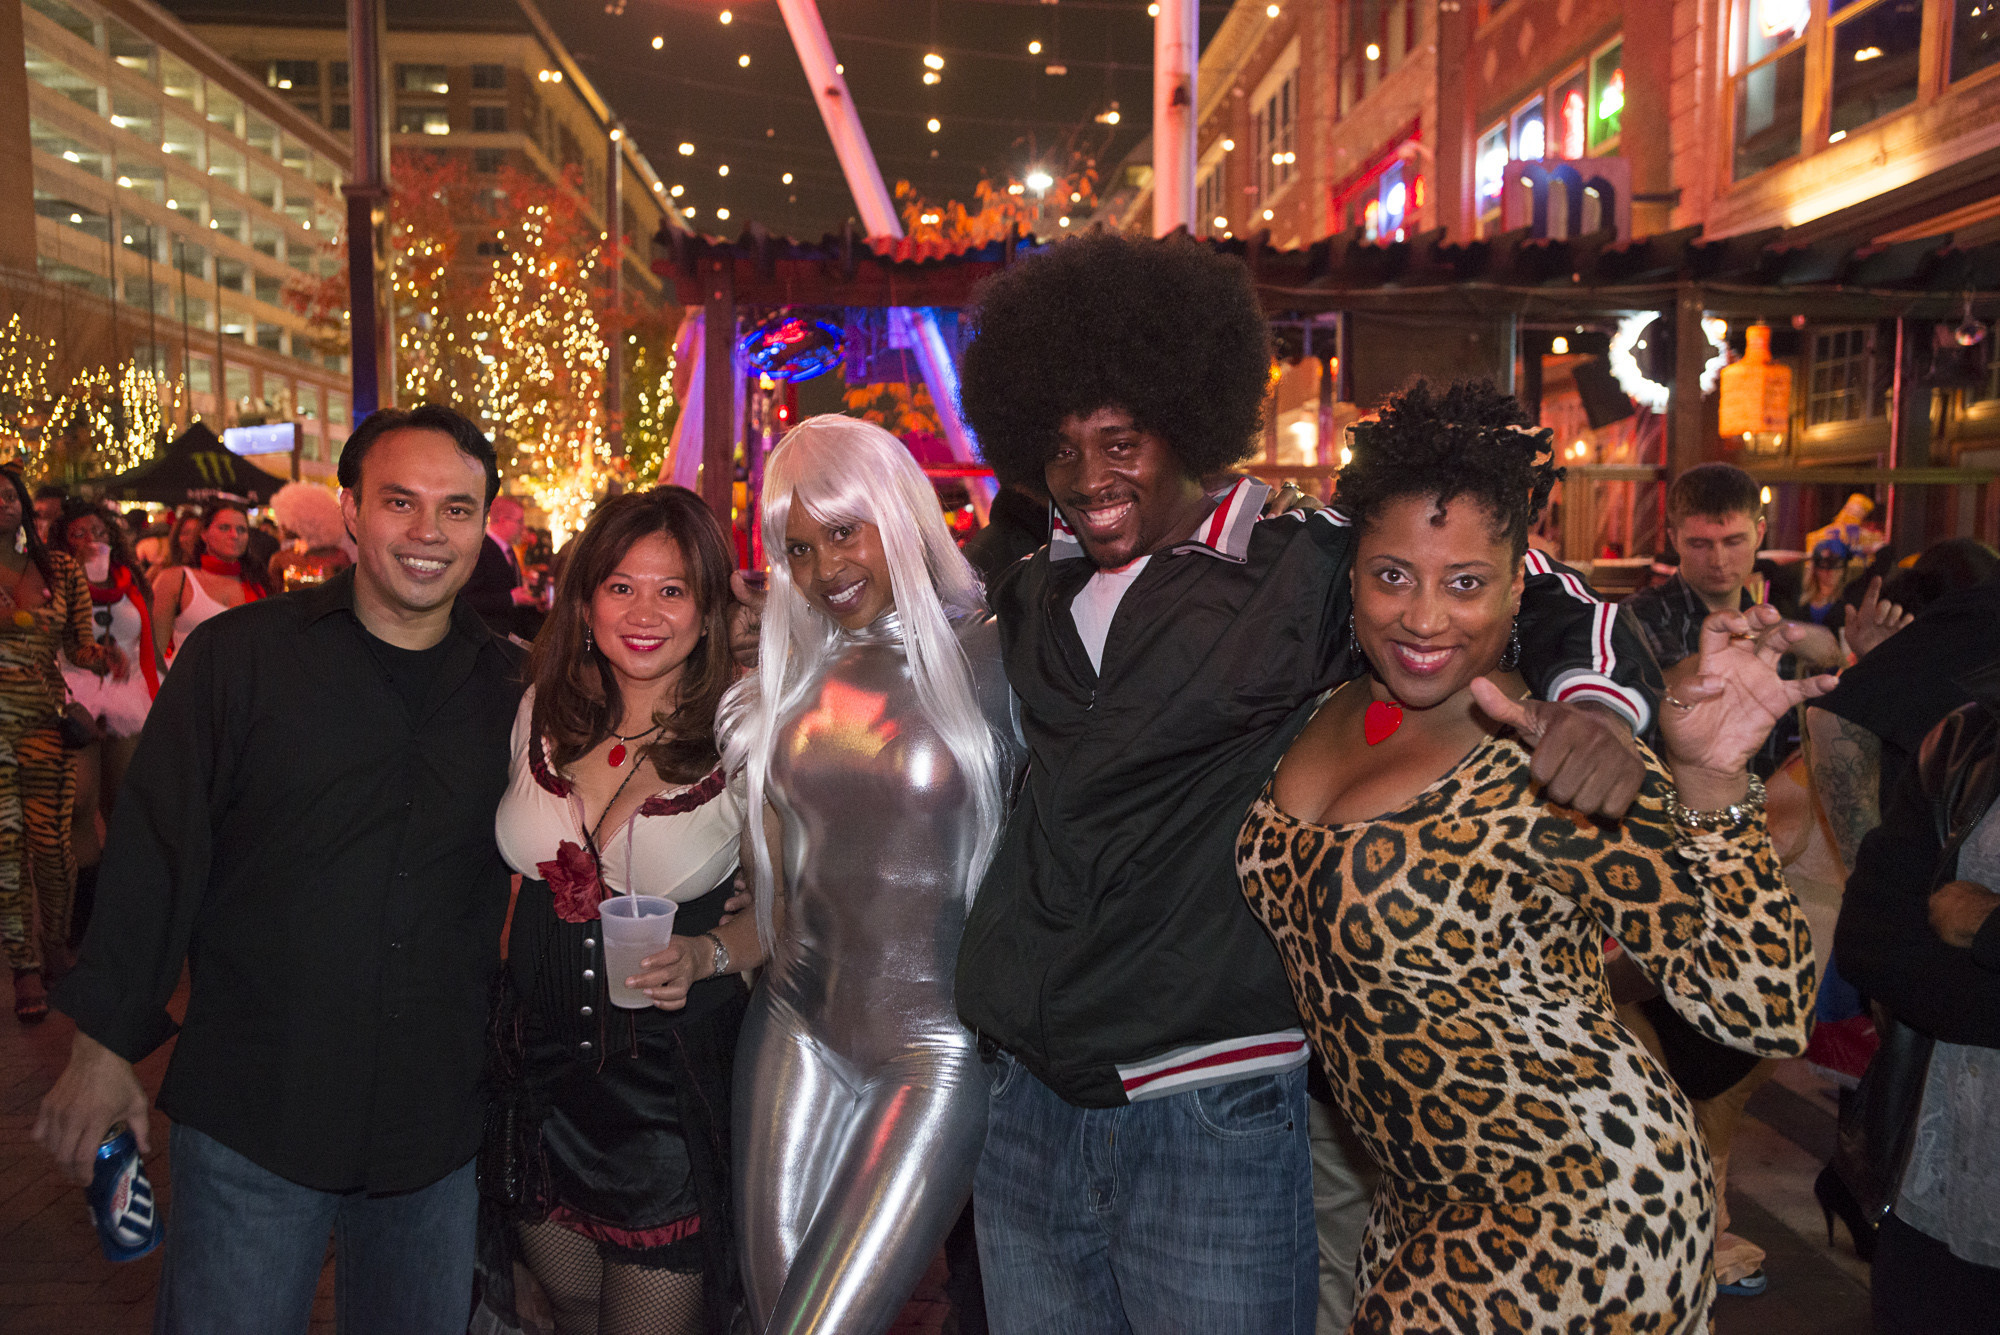 Halloween 2017 events and deals at Baltimore-area bars and ...